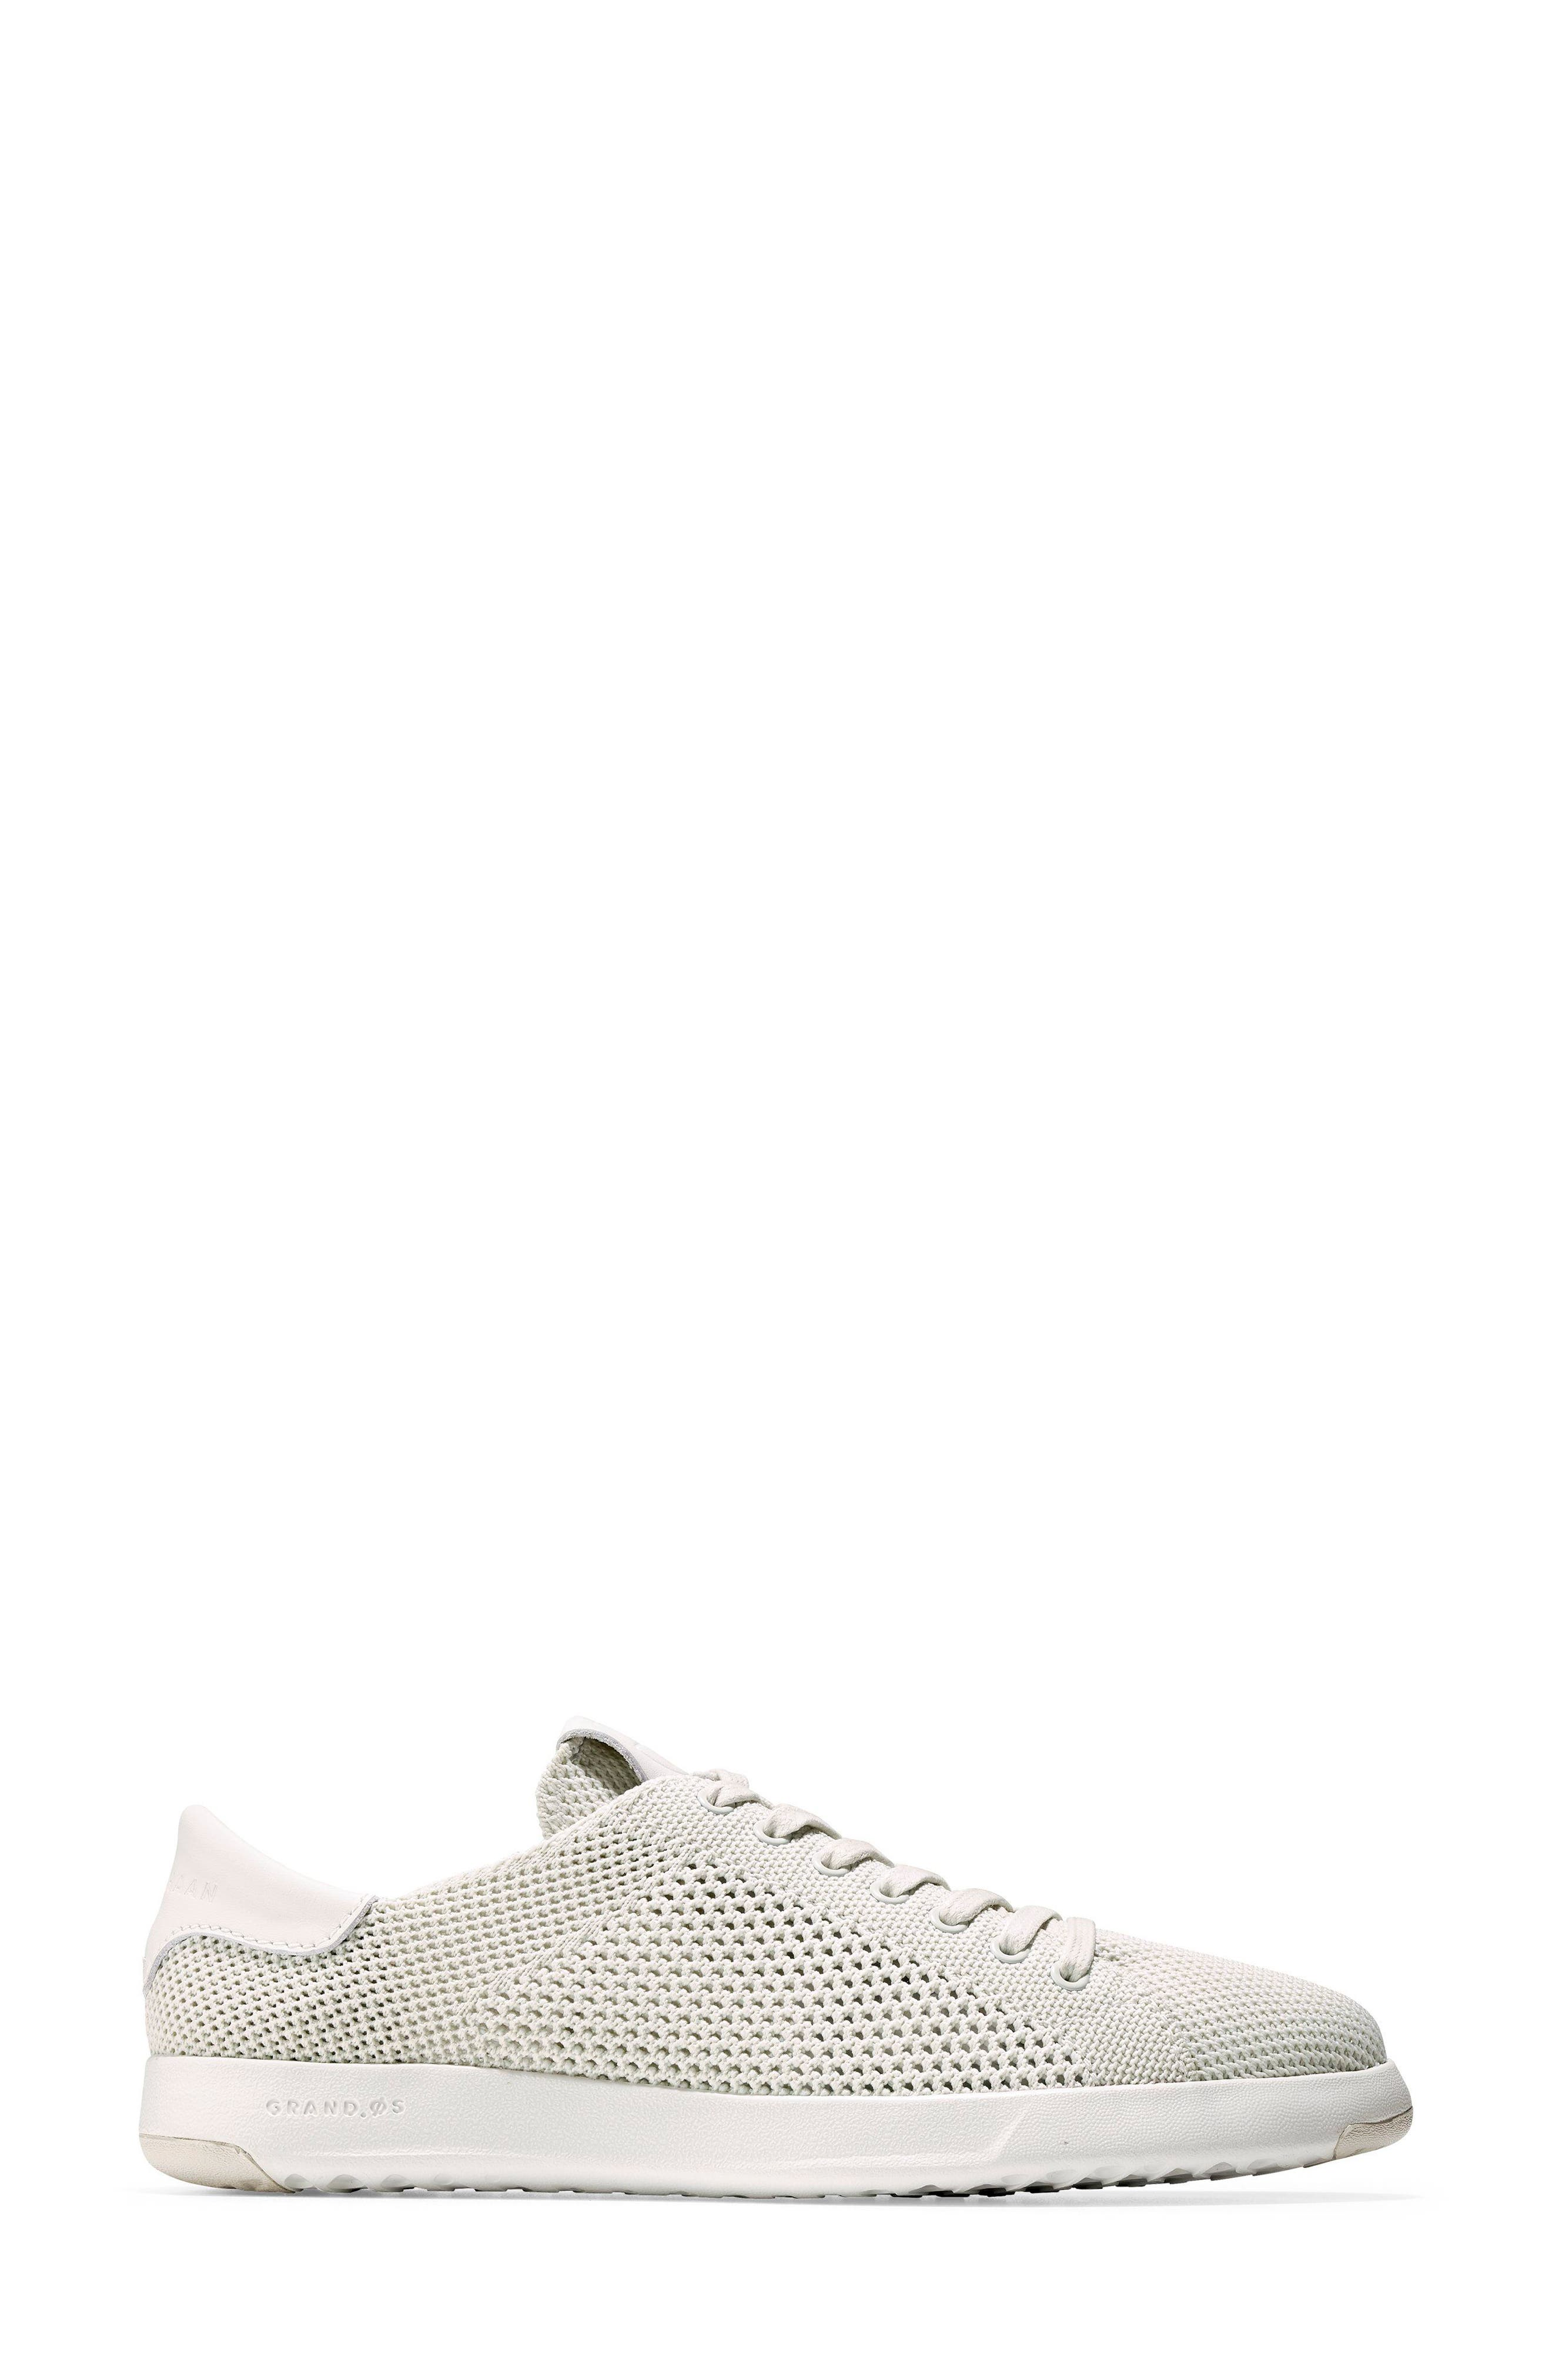 COLE HAAN, GrandPro Stitchlite Sneaker, Alternate thumbnail 3, color, CHALK FABRIC